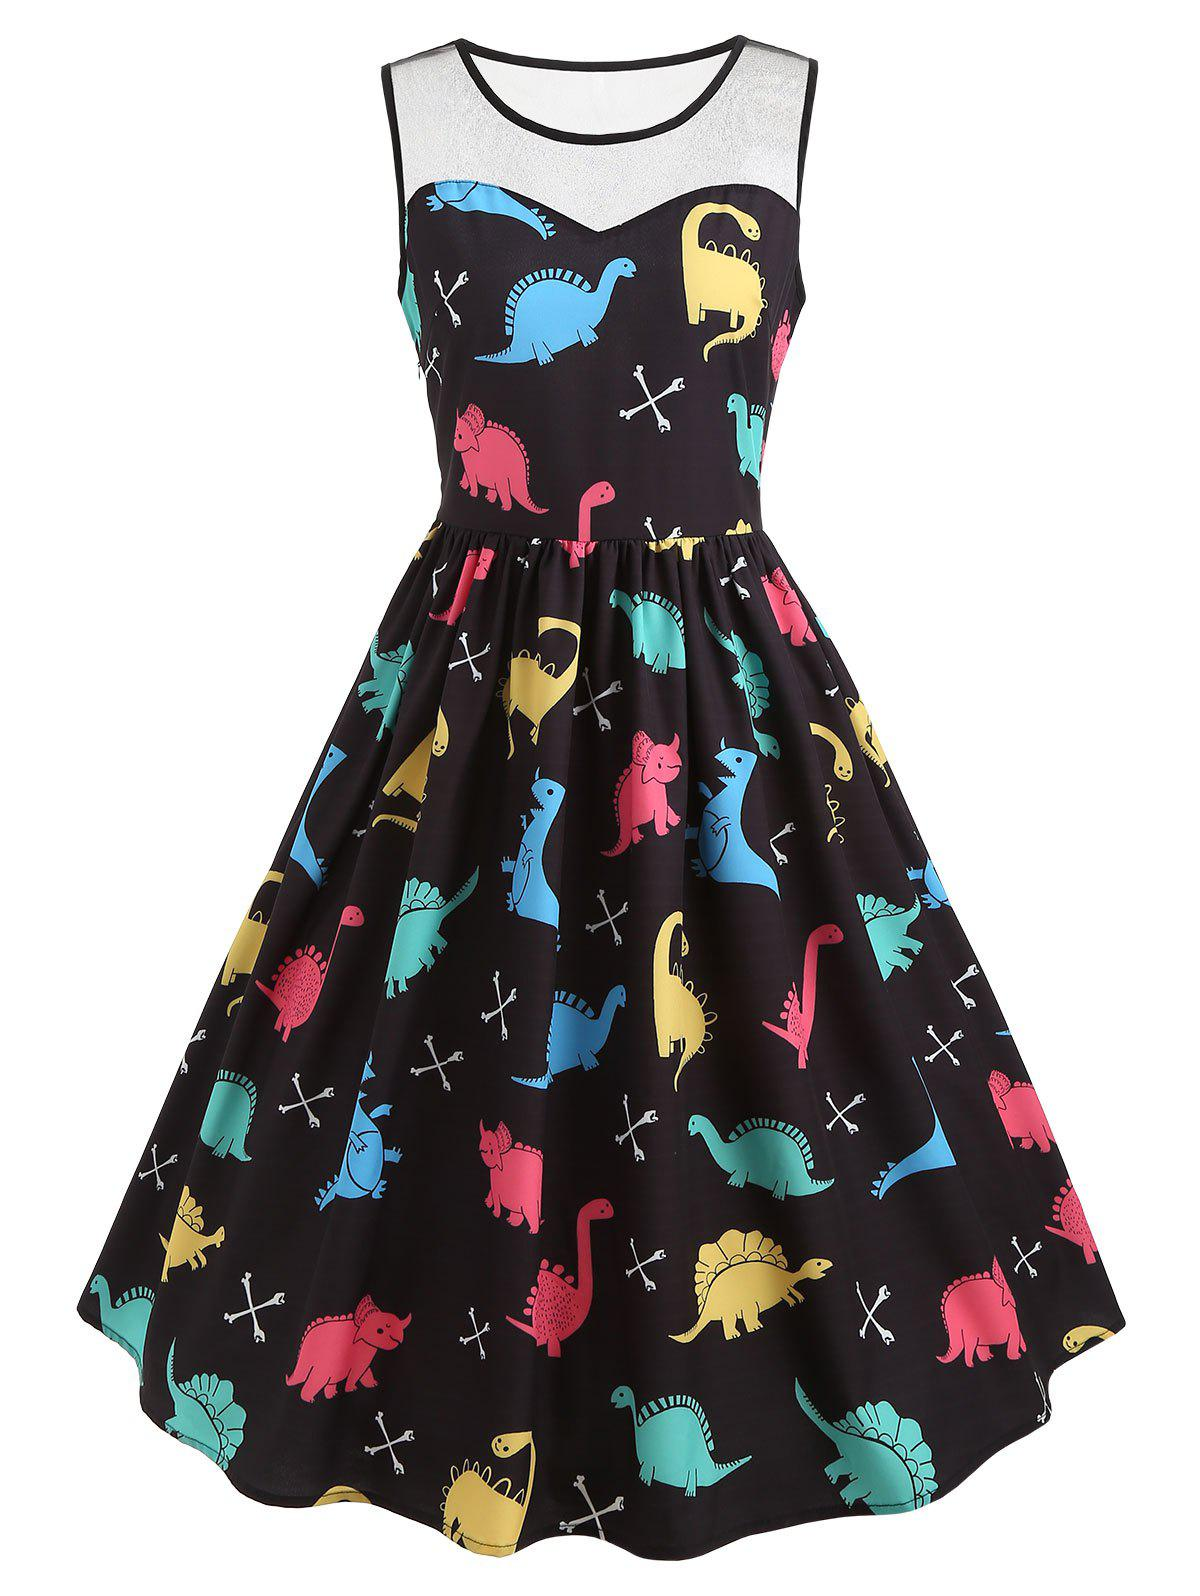 Hot Mesh Insert Cartoon Dinosaur Print Vintage Dress